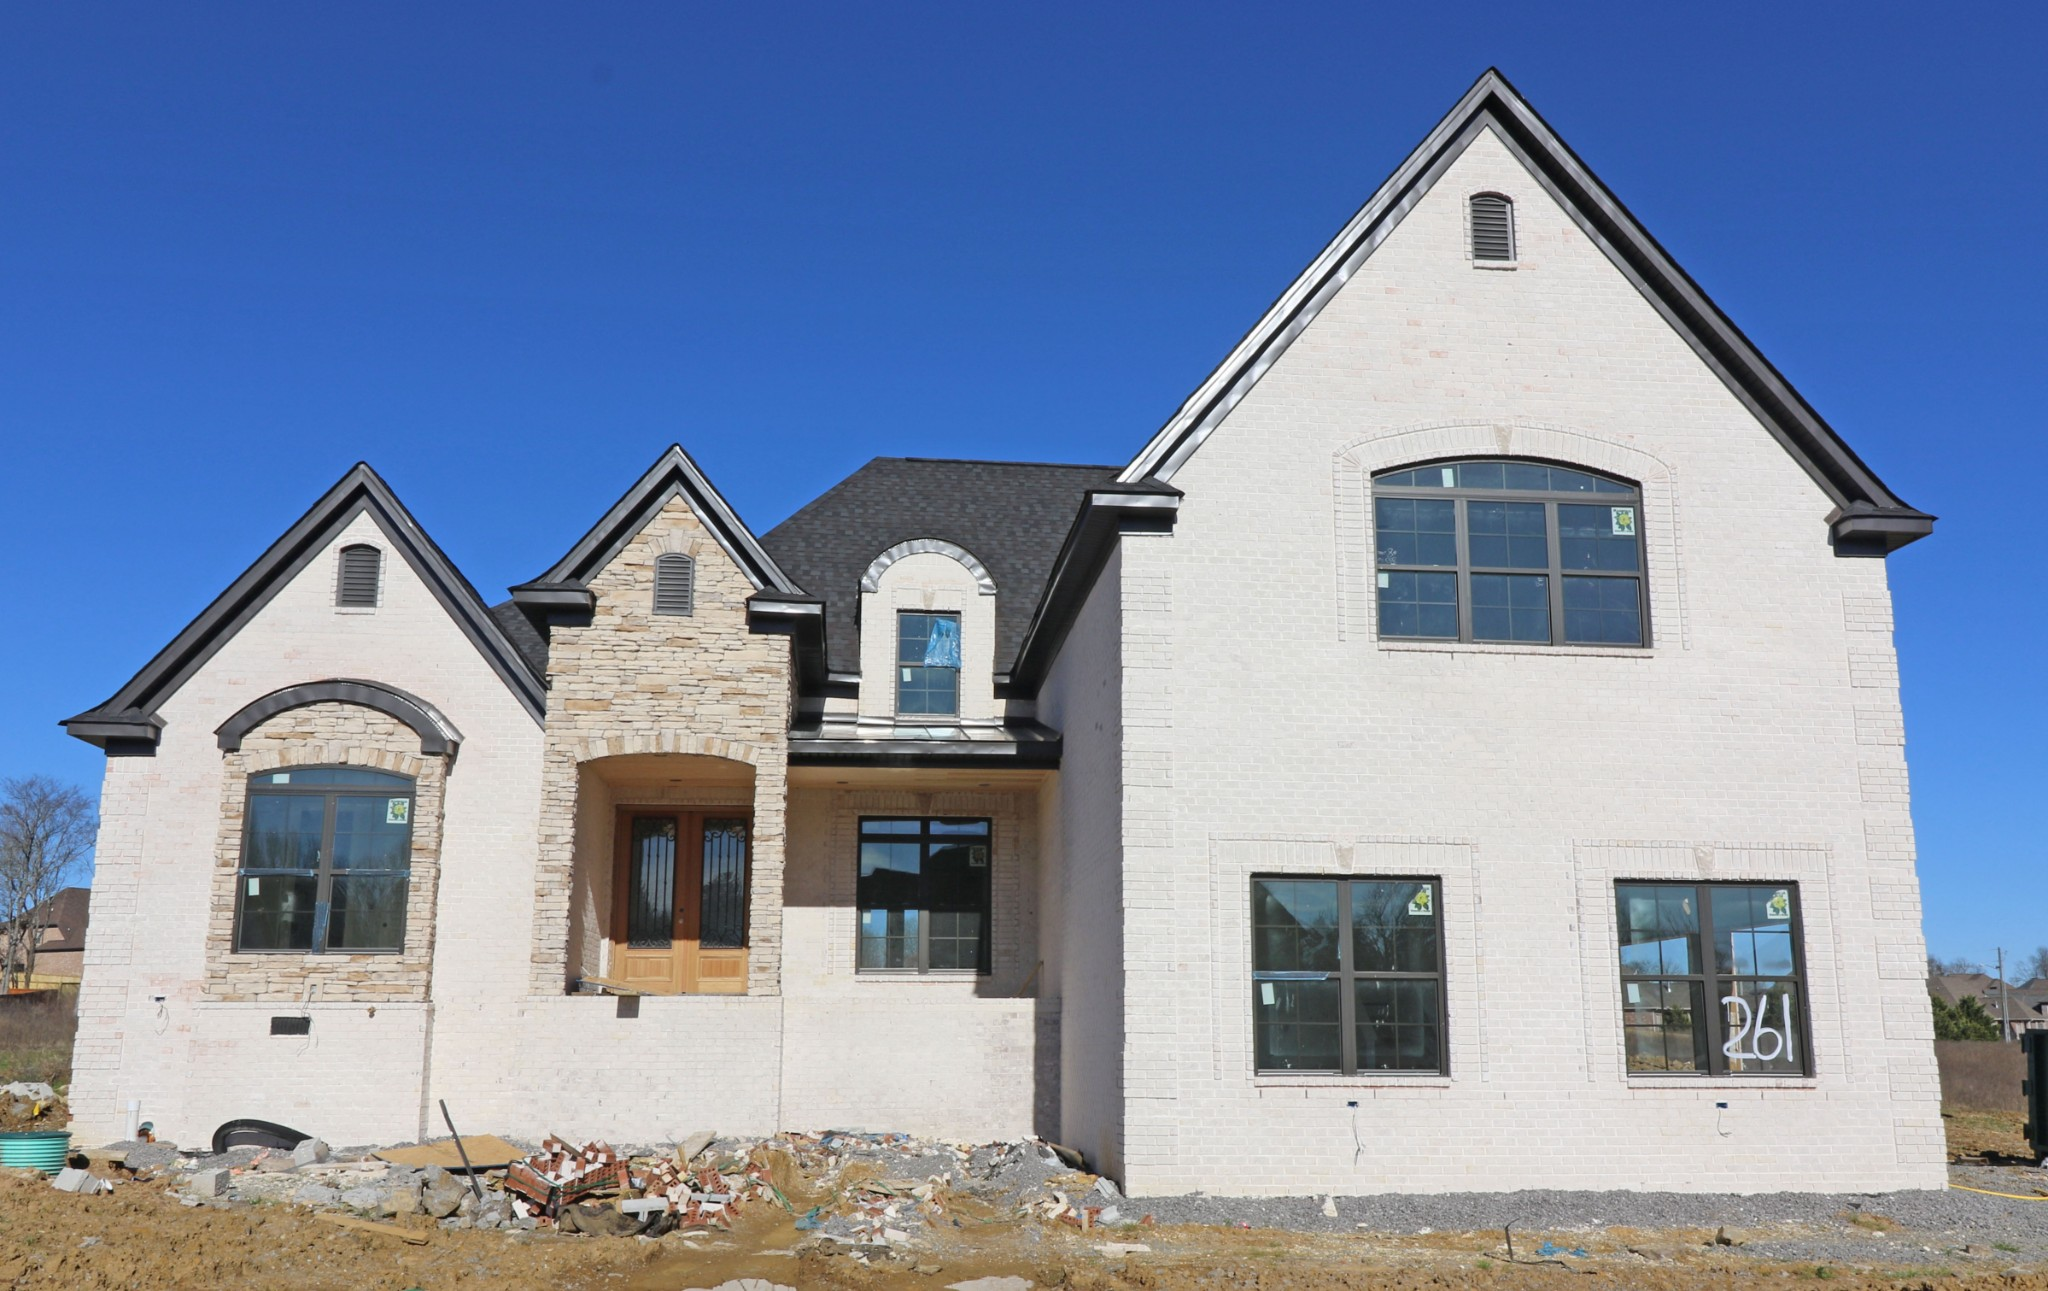 $769,900 - 5Br/5Ba -  for Sale in Wright Farms Sec. 5a, Mount Juliet